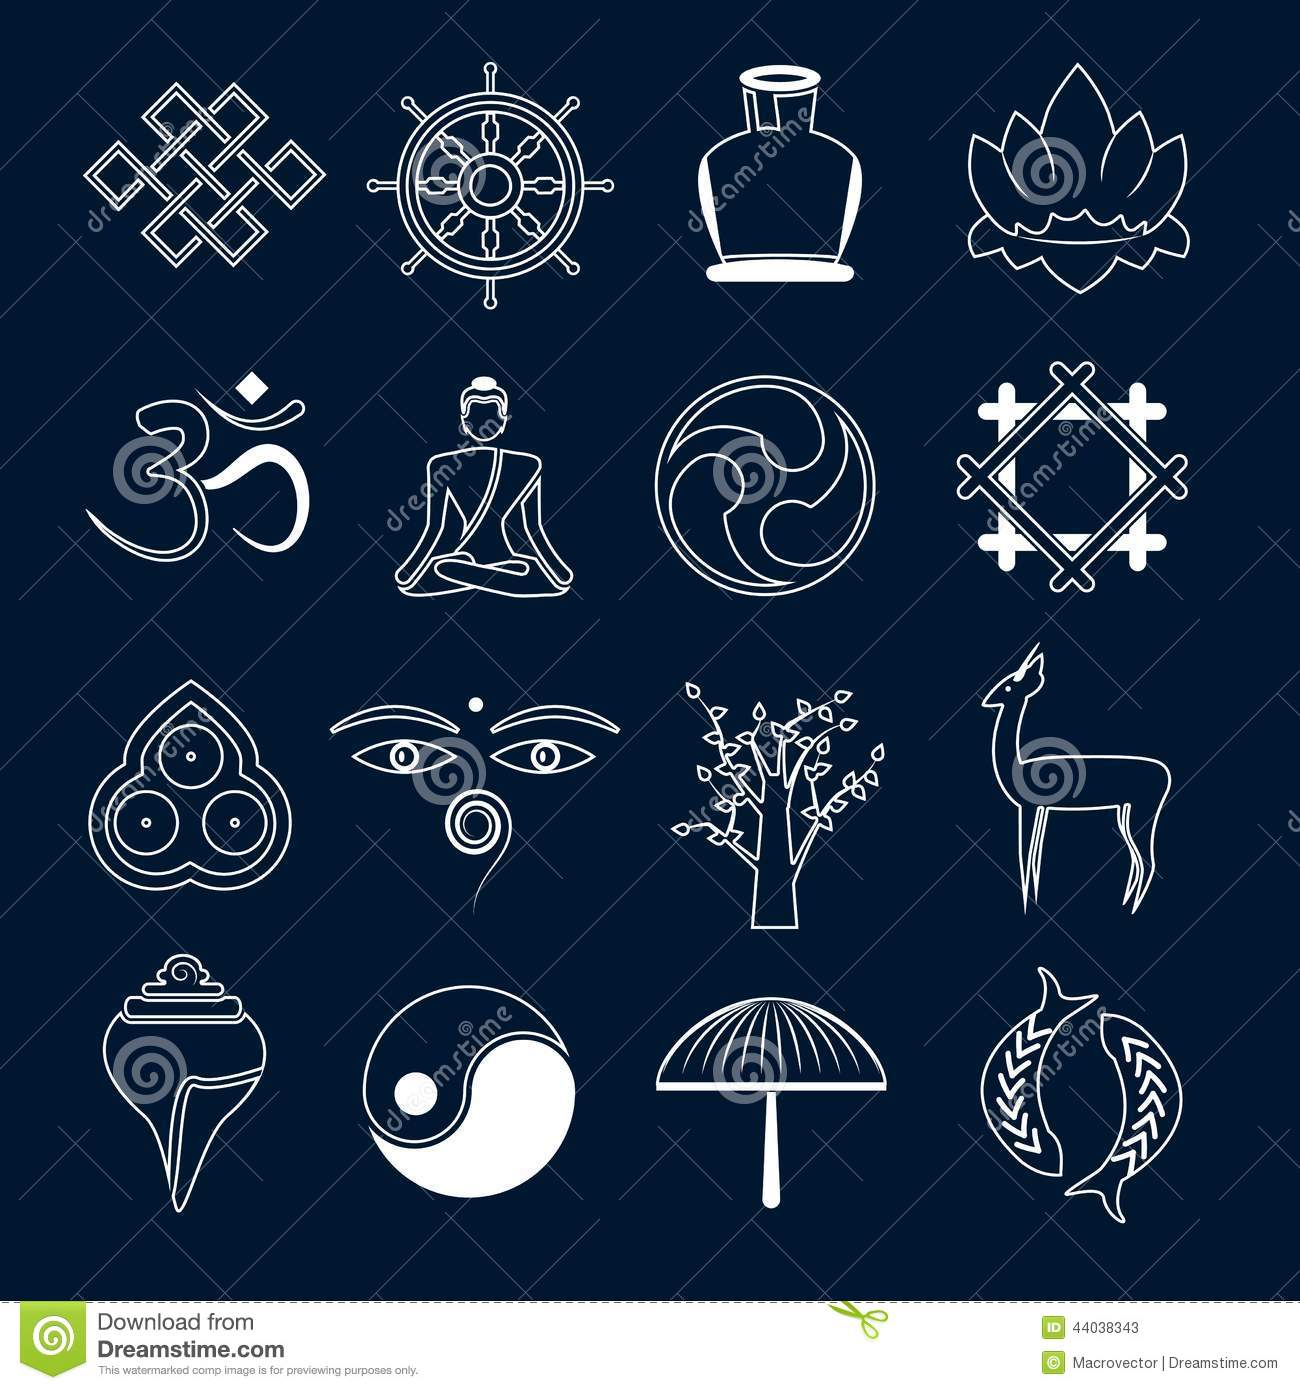 Zen Buddhist Symbols Pictures to Pin on Pinterest - PinsDaddy